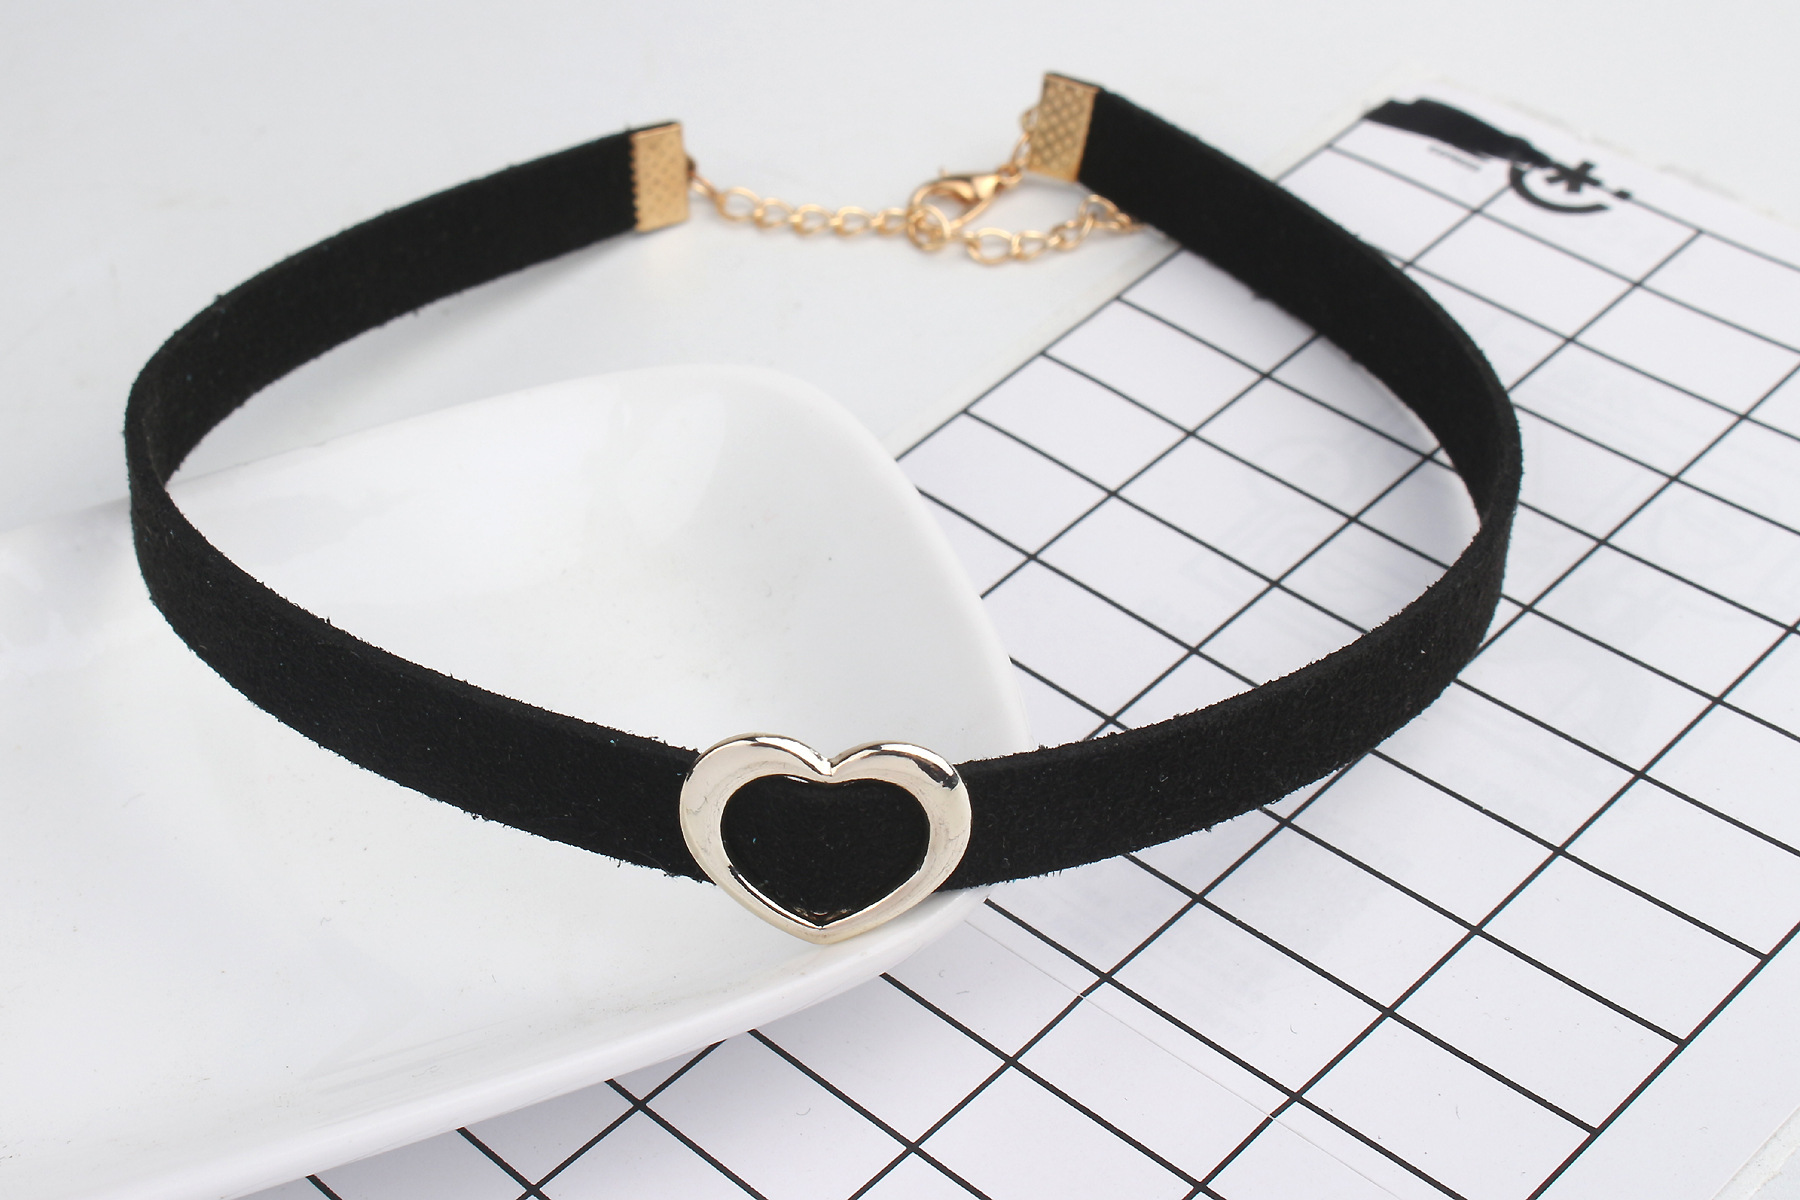 ba8a892ecaa Women's Chockers Trendy Bijoux Femme Gold Heart Chokers Necklaces For Women  Collares Mujer Black Velvet Choker-in Choker Necklaces from Jewelry ...